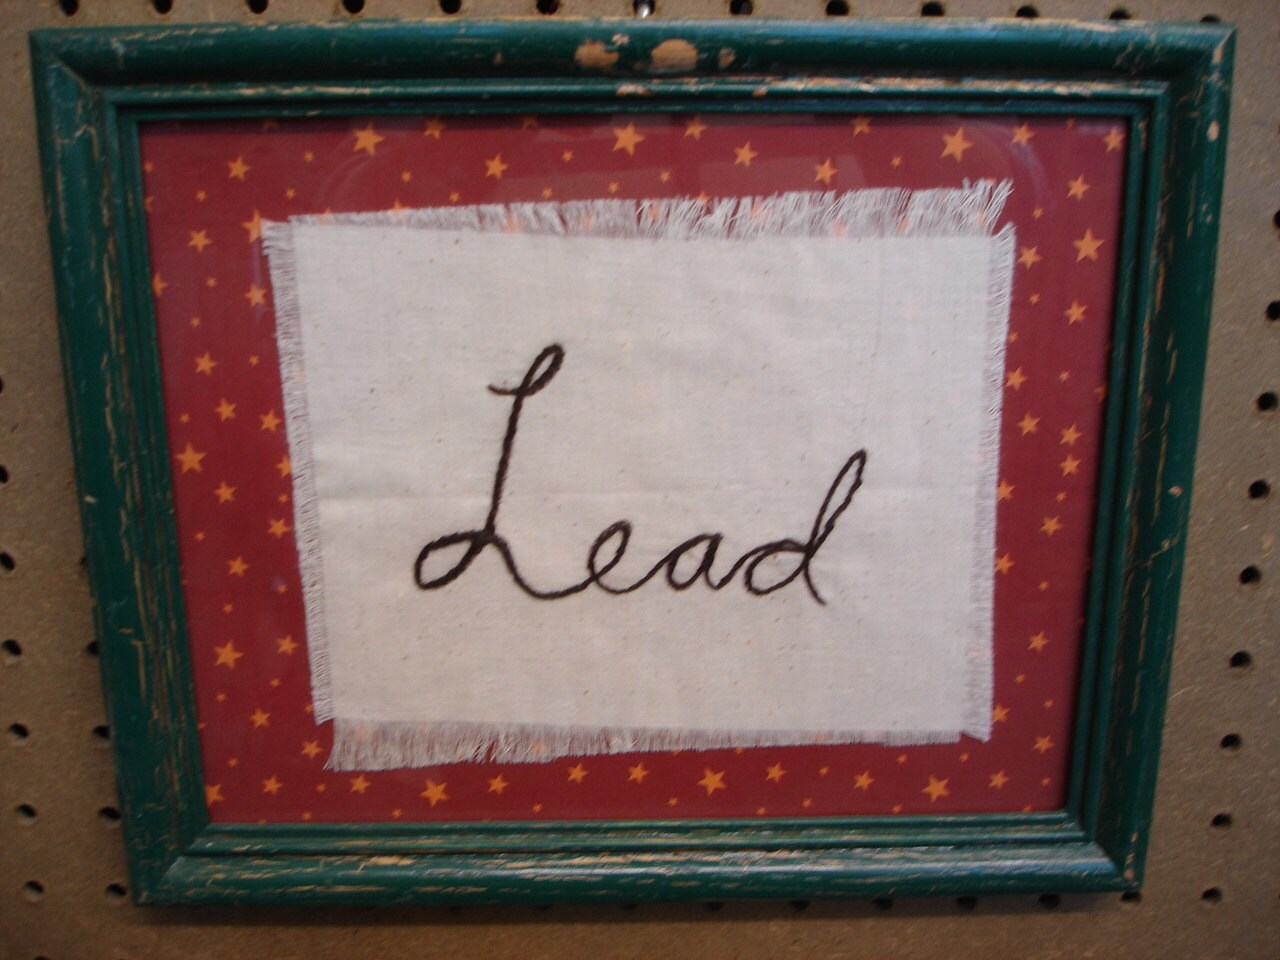 Inspiring,Phrases,Lead,Hand,Stitched,Wall,Decor,Framed,Housewares,Home_Decor,home_decor,phrase,hand_stitch,inspiring,inspire,frame,framed_phrase,for_your_home,wall_decor,gift,houseware,reclaimed,lead,wood,paper,fabric